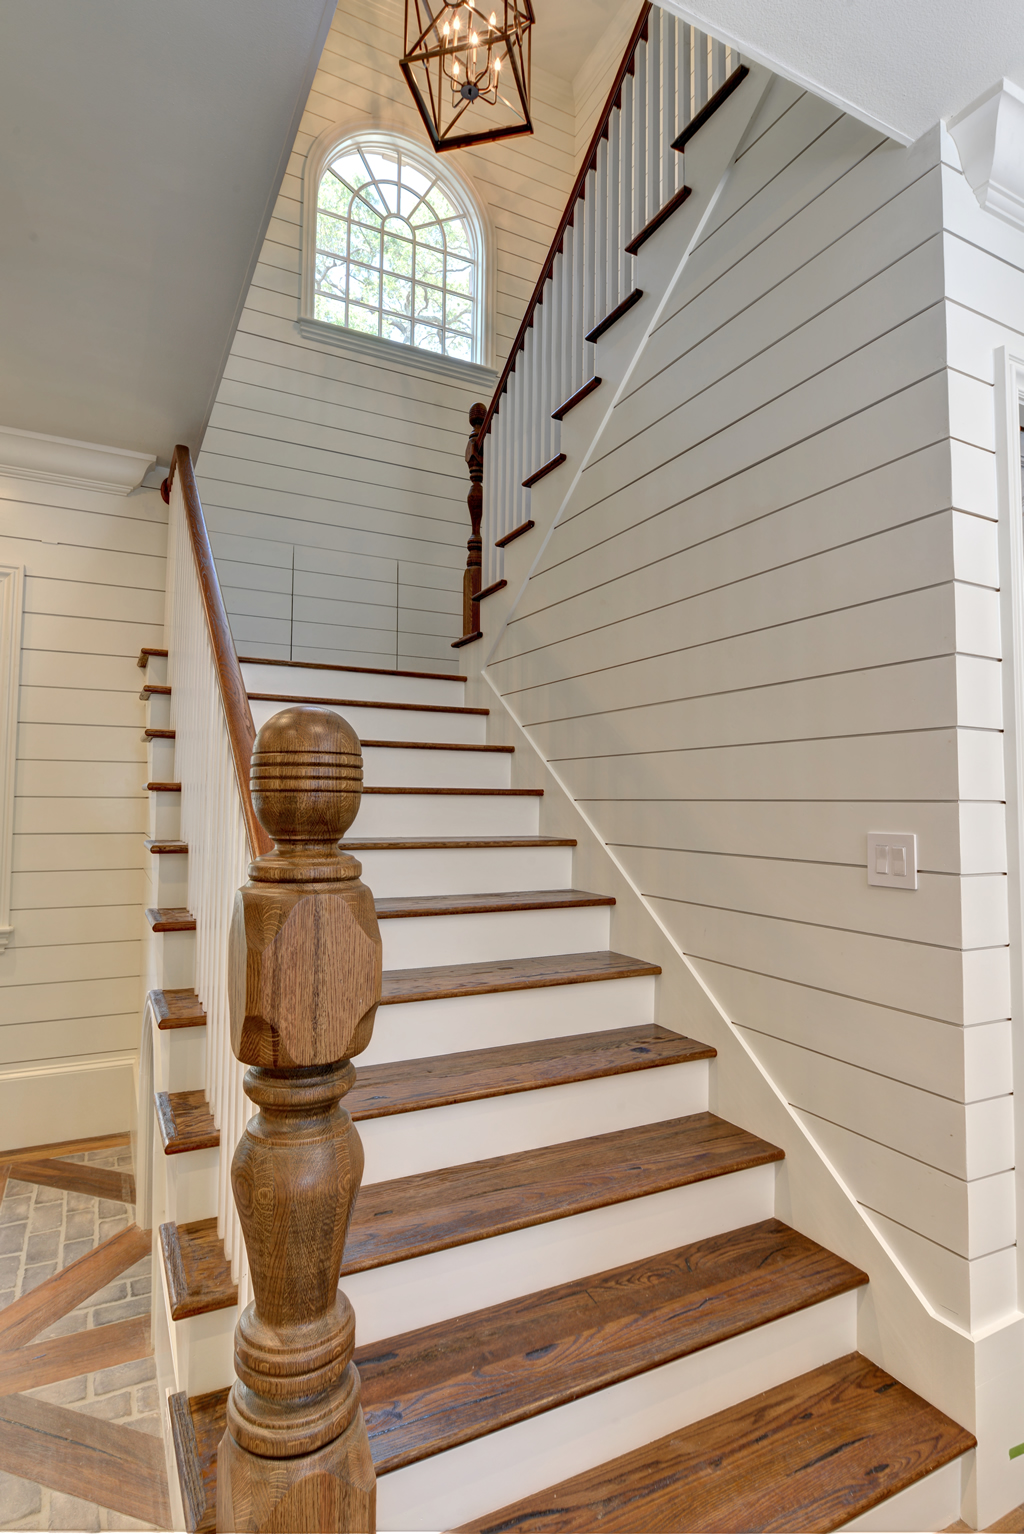 Staircase with white paneled walls and wooden accents